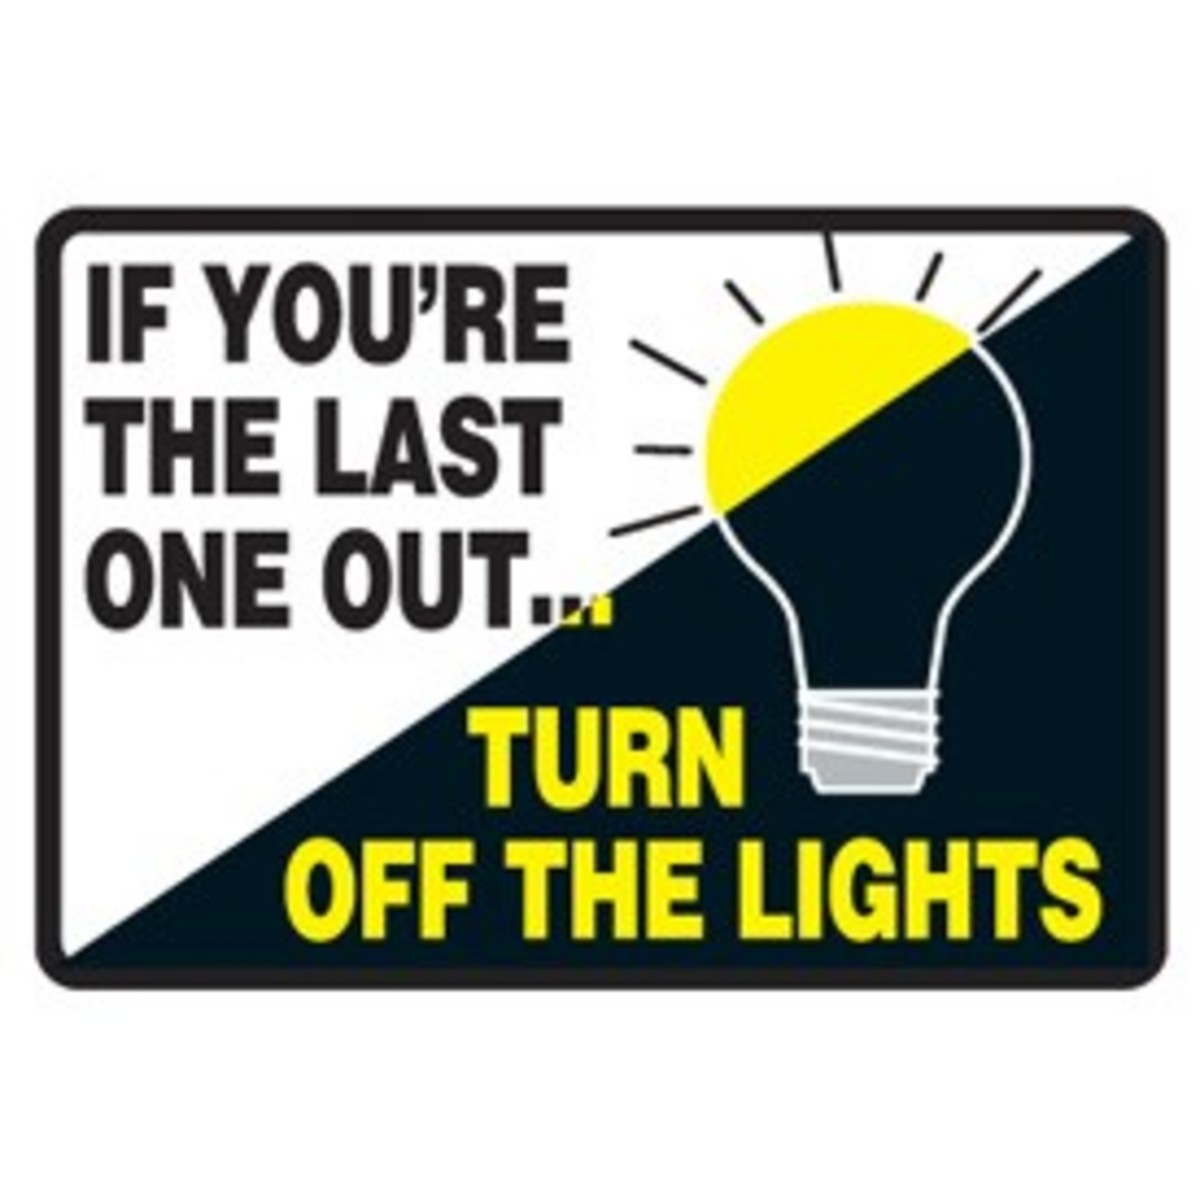 Turn off the light sign - like an old friend.